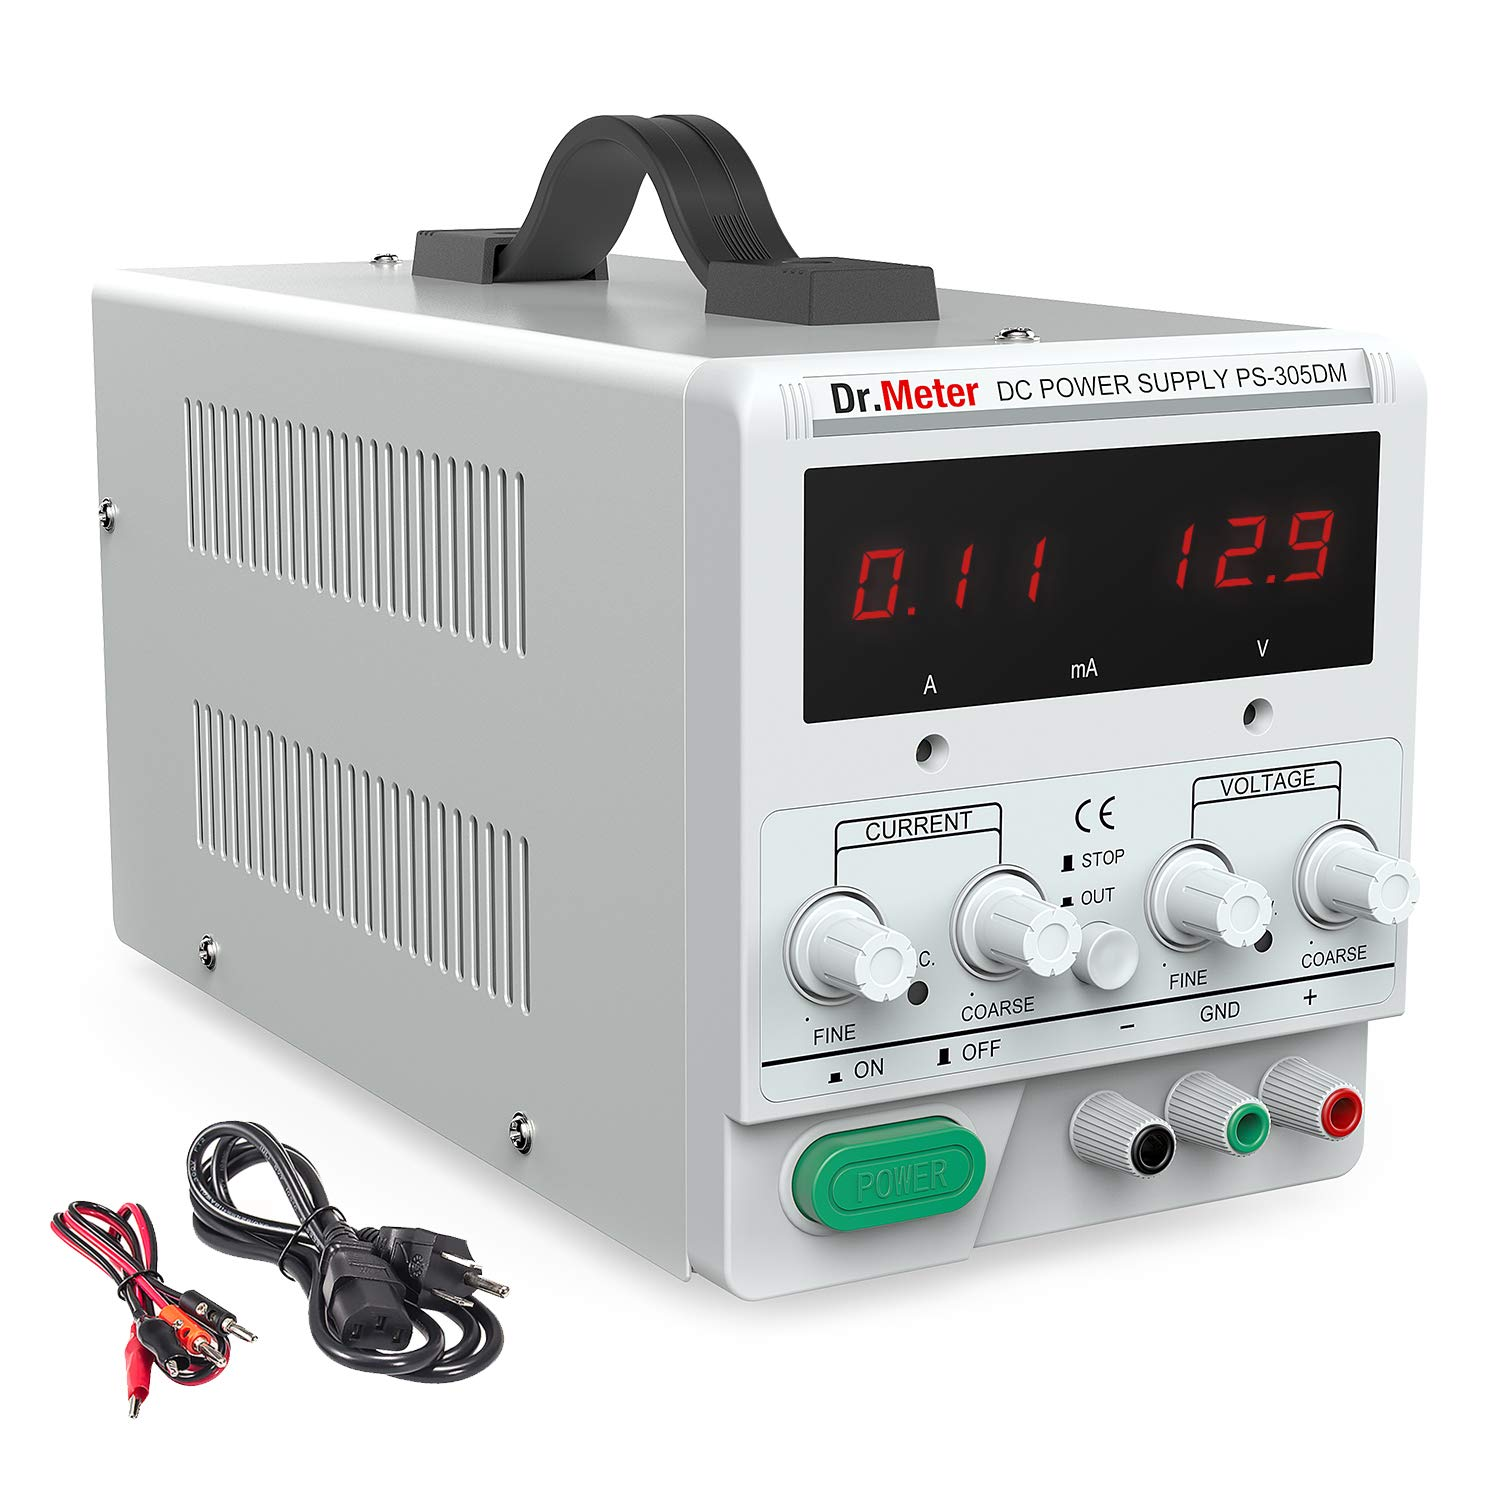 Dr meter 30V/5A DC Bench Power Supply Single-Output 110V/220V Switchable  with Alligator Clip included, US 3-prong Cable,PS305DM